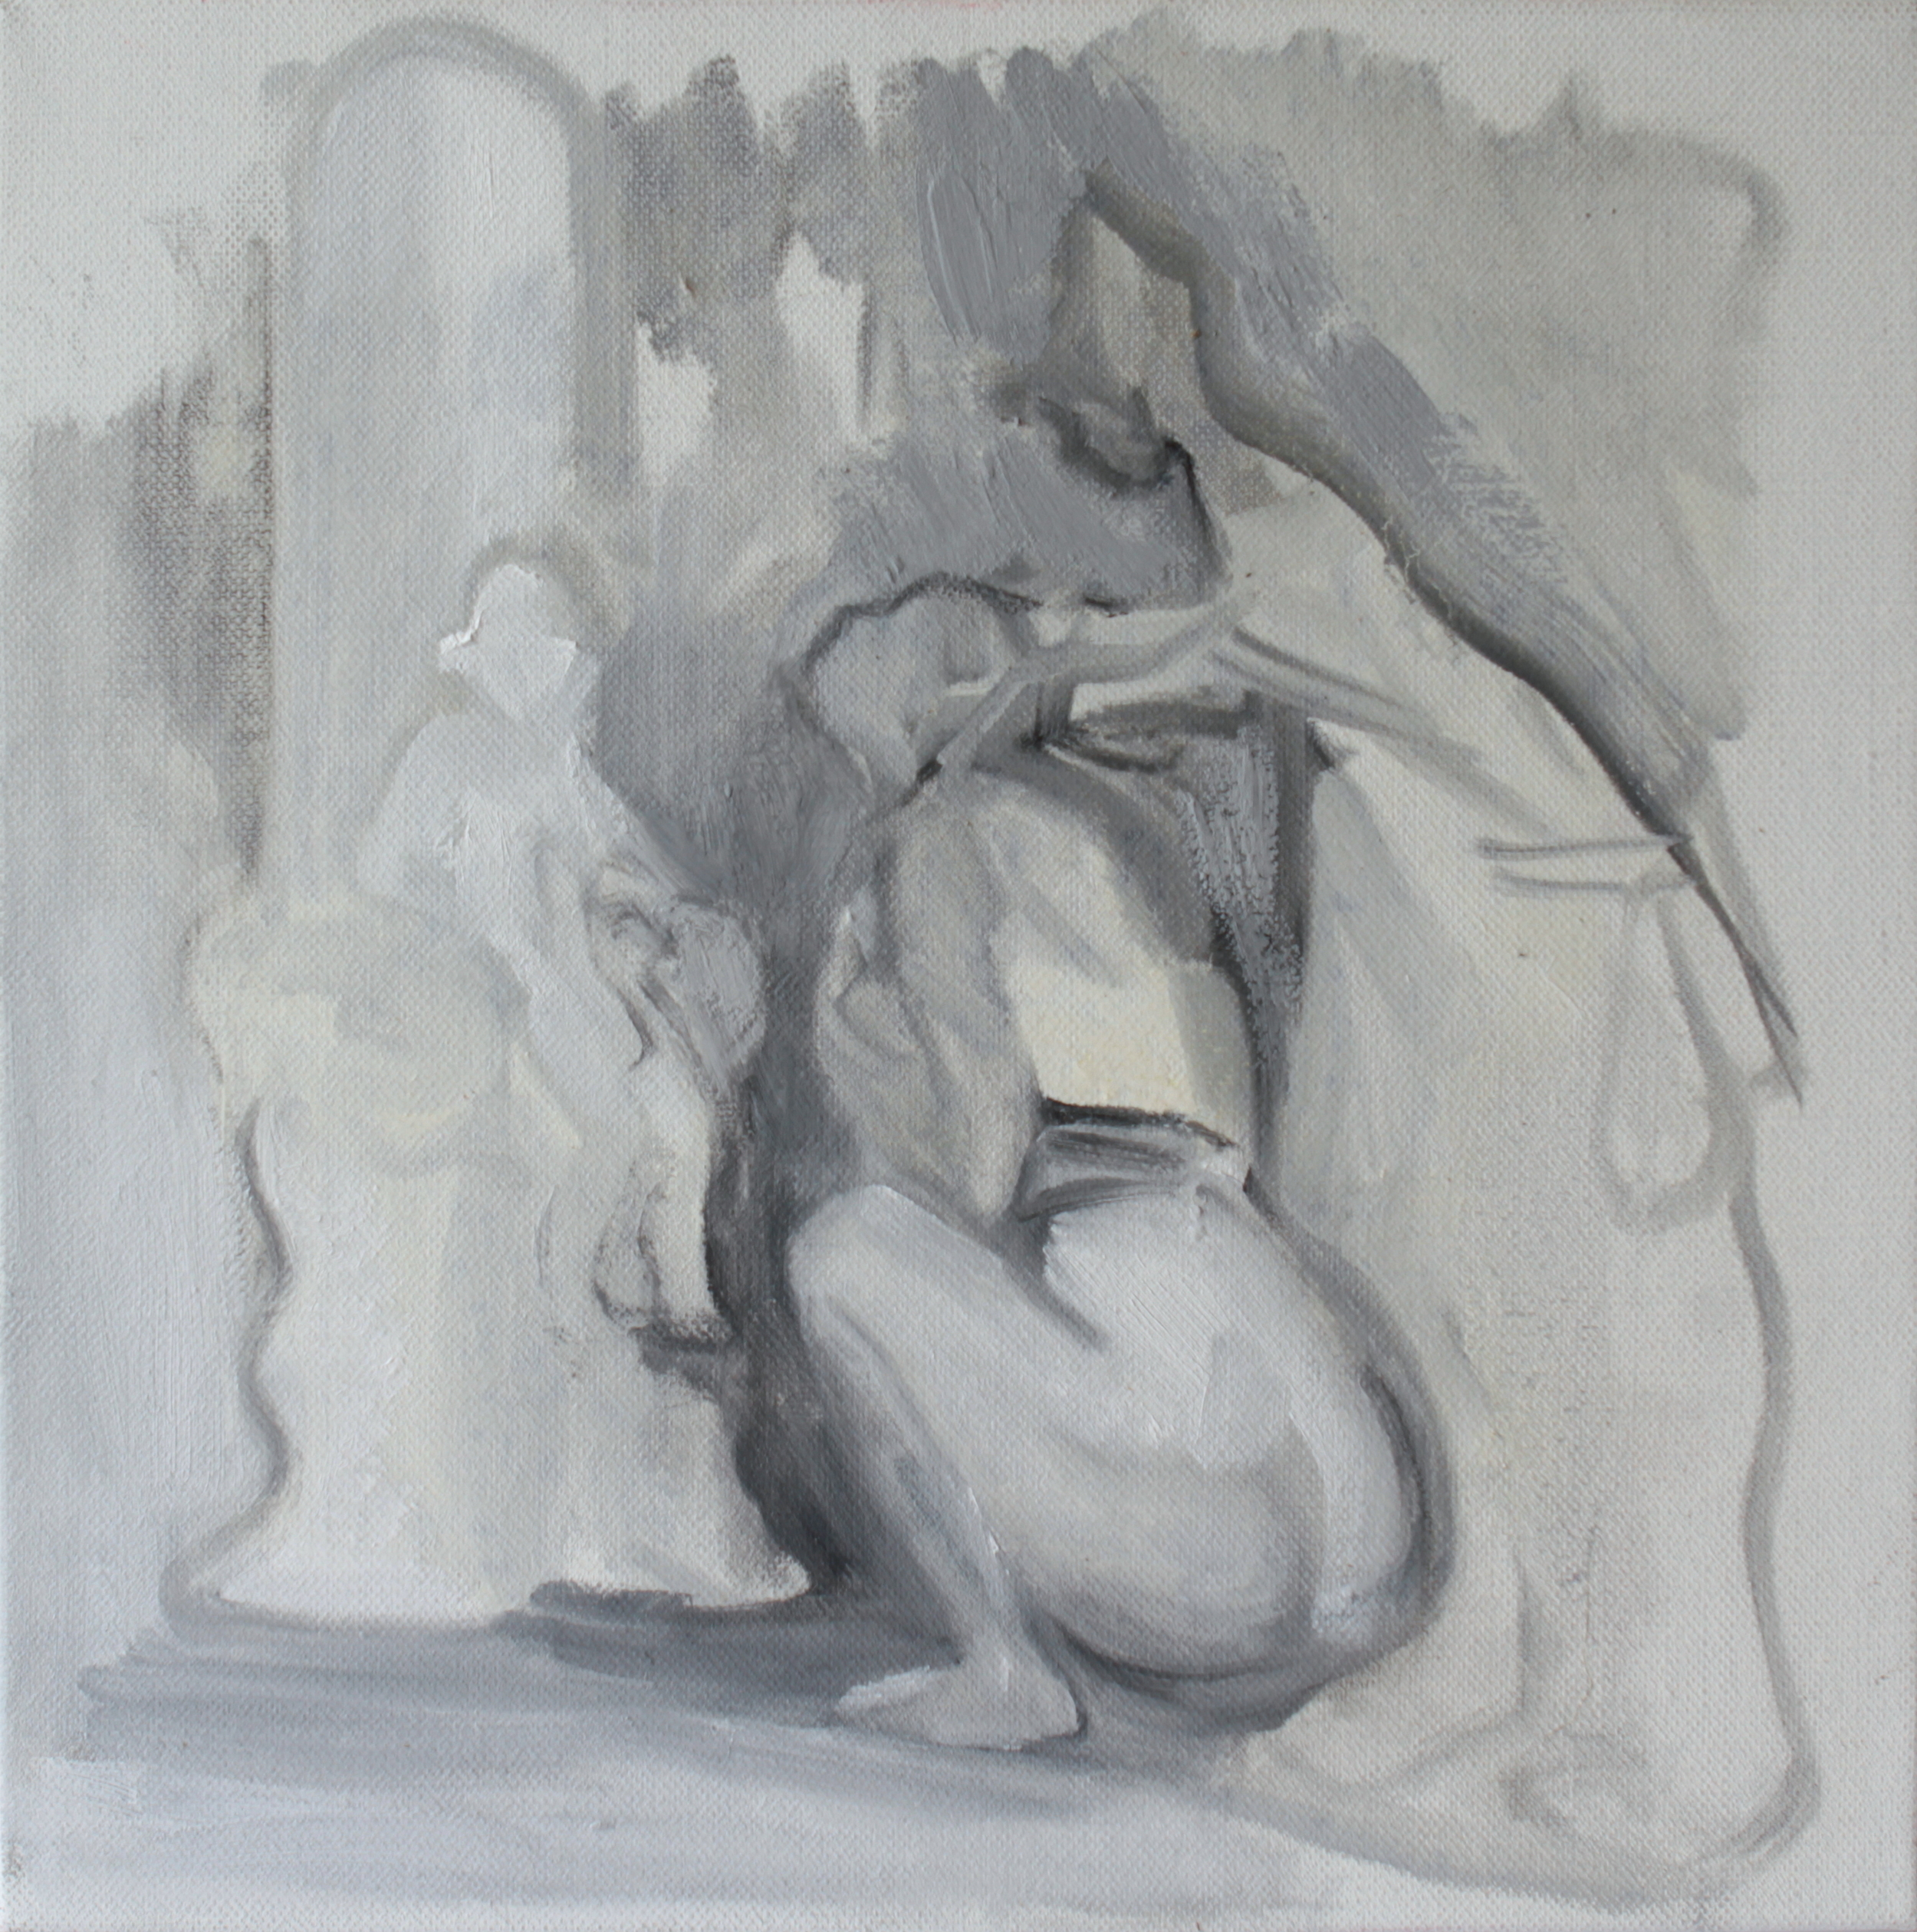 The Audience, Oil and encaustic on linen, 37.8 x 37.8 cm, 2015